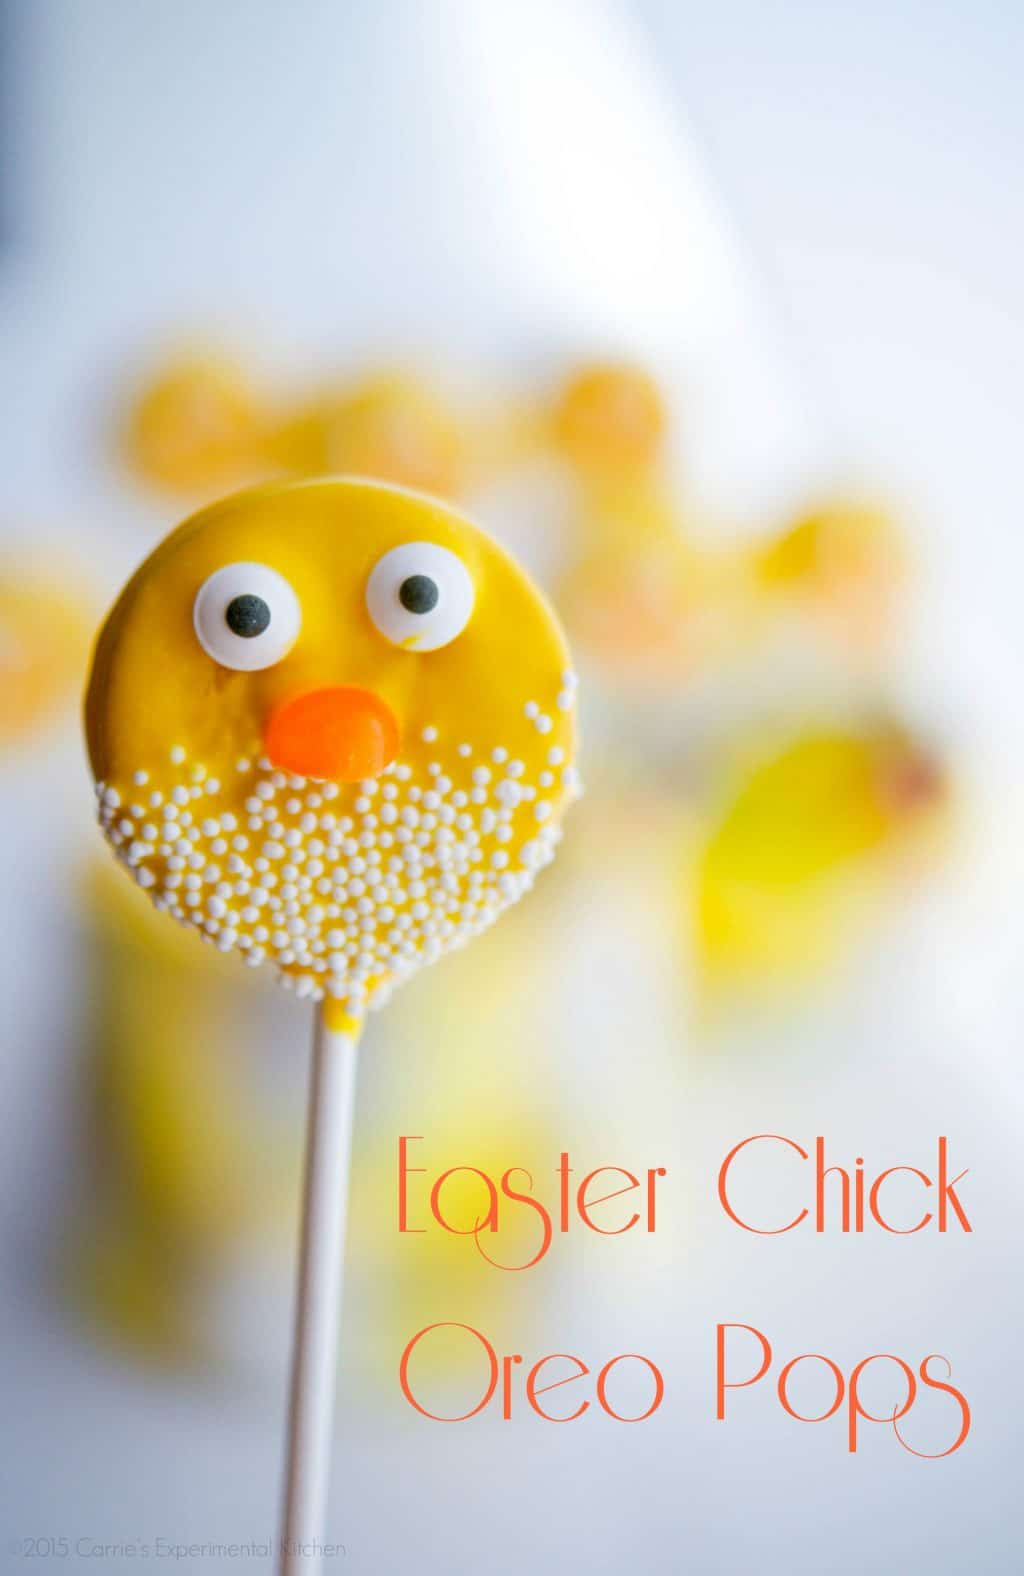 Easter Chick Oreo Pops from Carrie's Experimental Kitchen